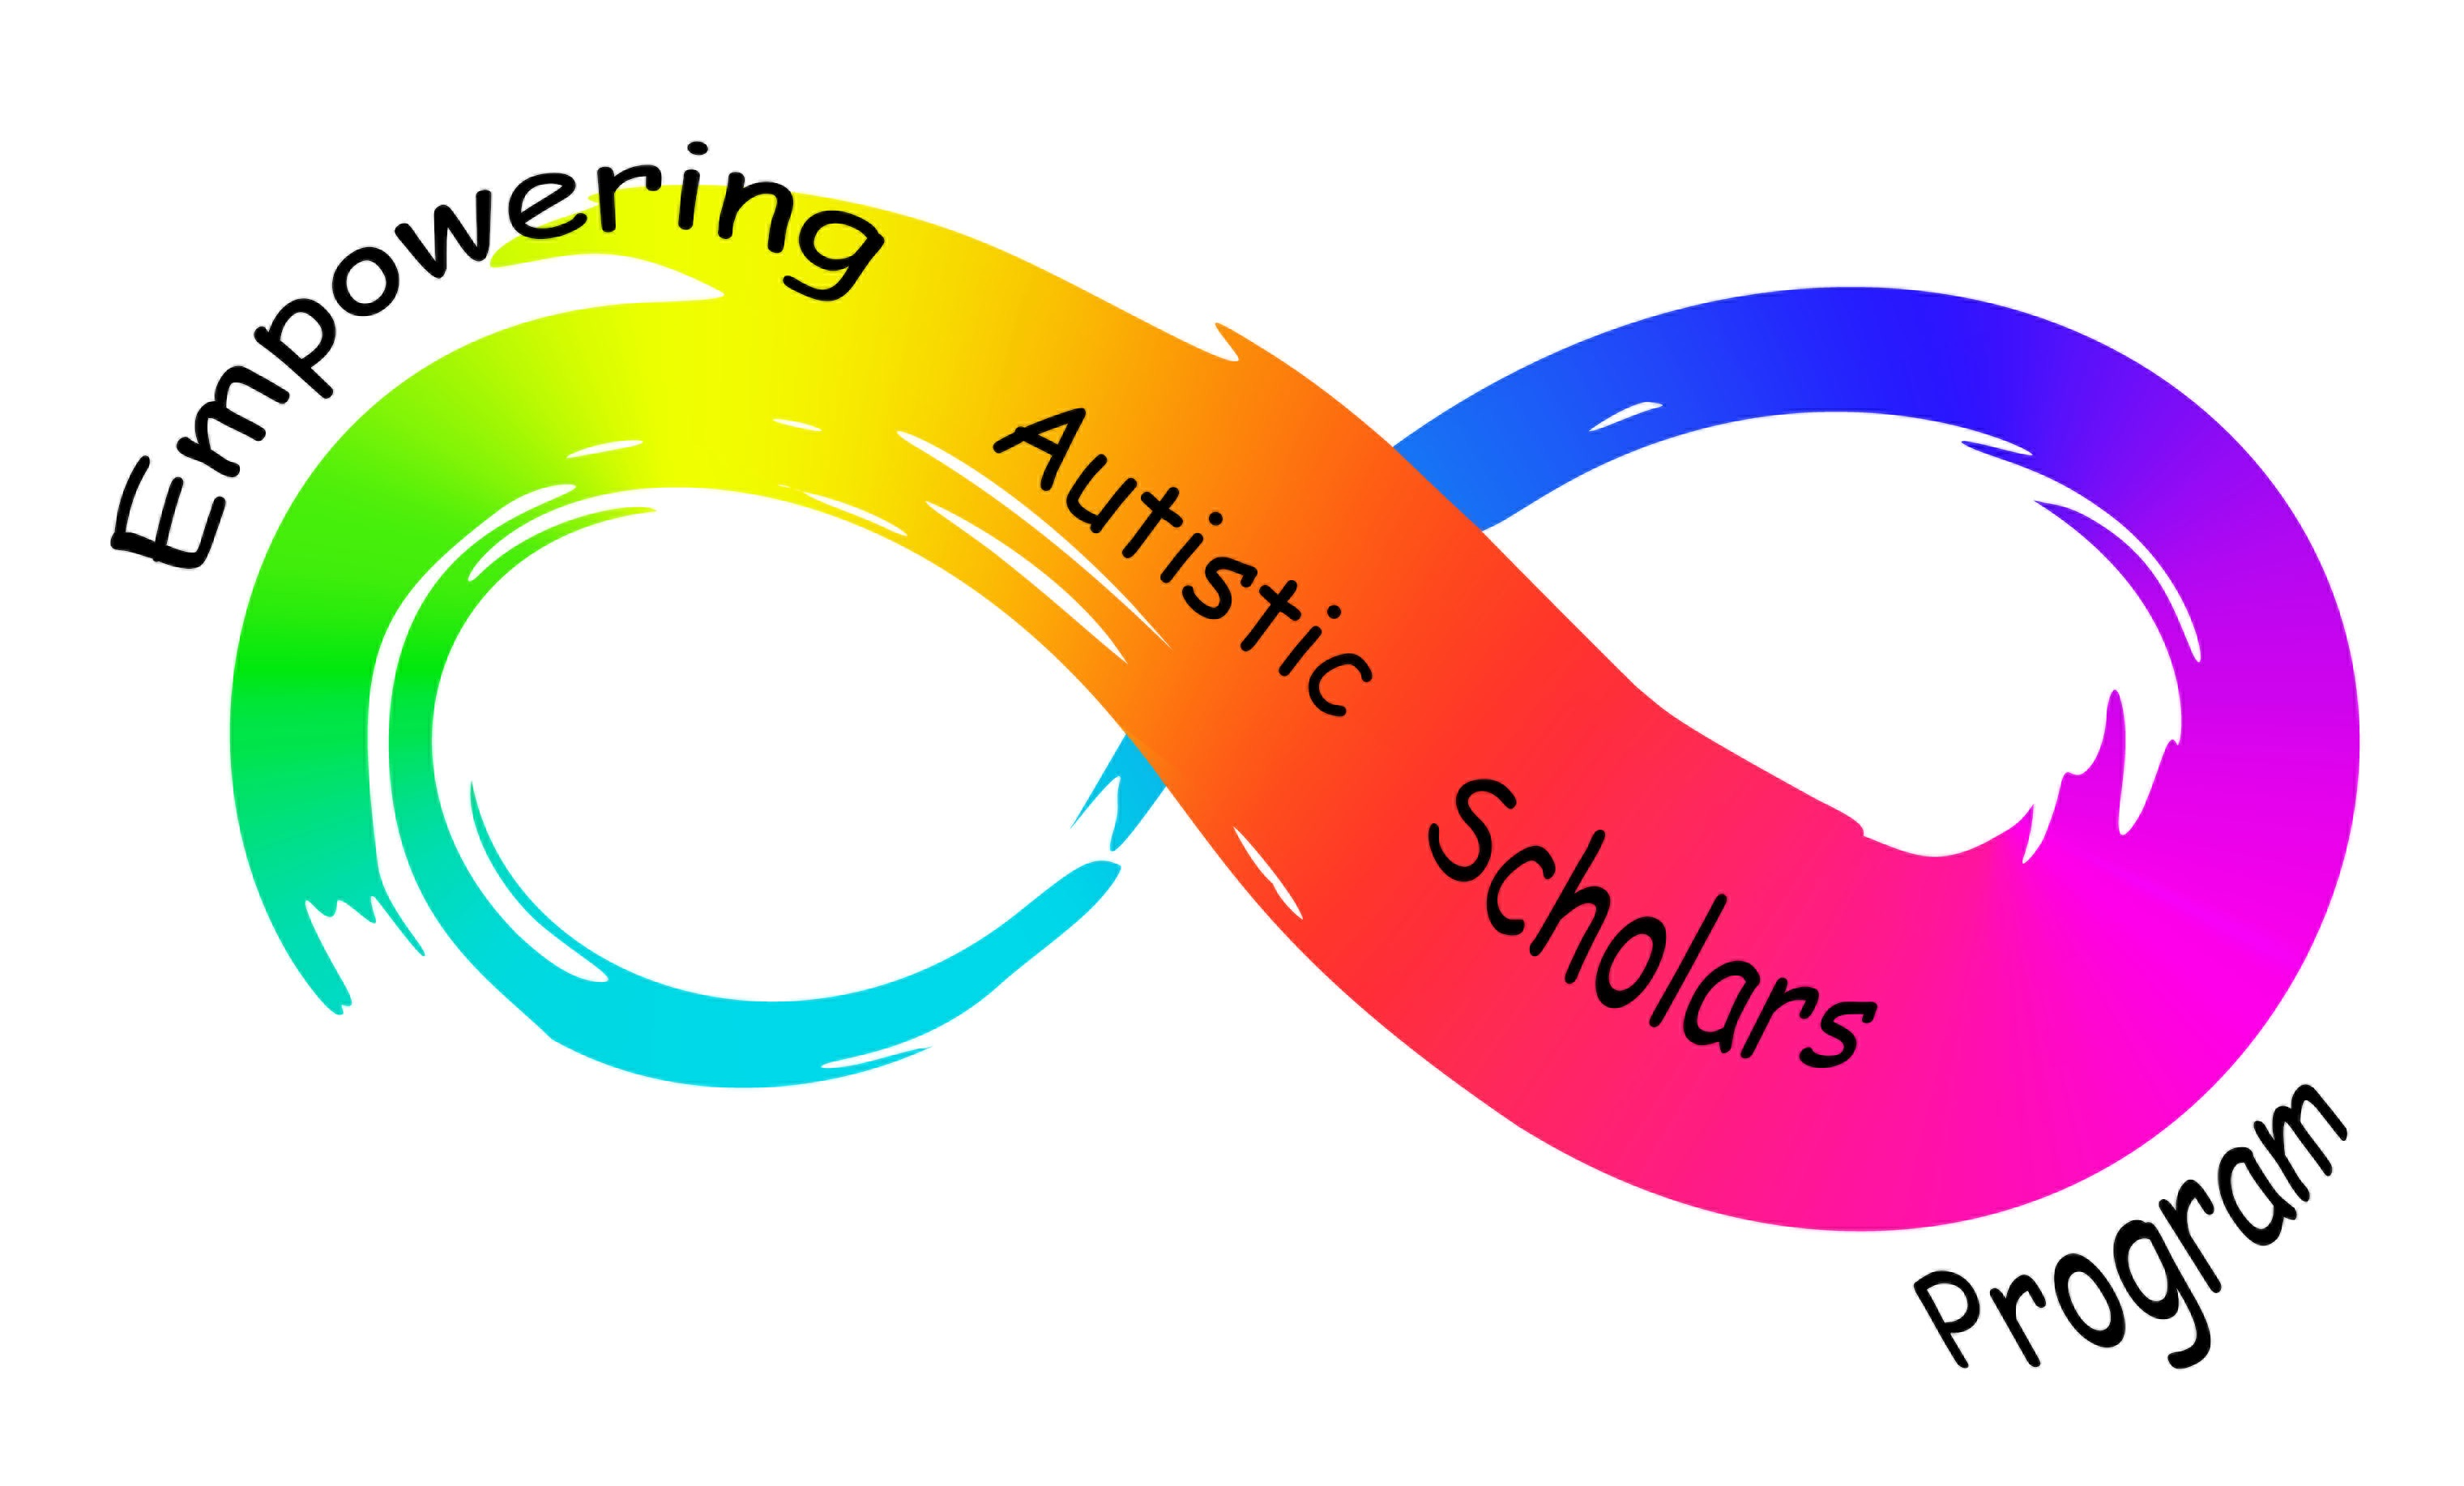 Rainbow infinity symbol in brush style with black text that says Empowering Autistic Scholars Program